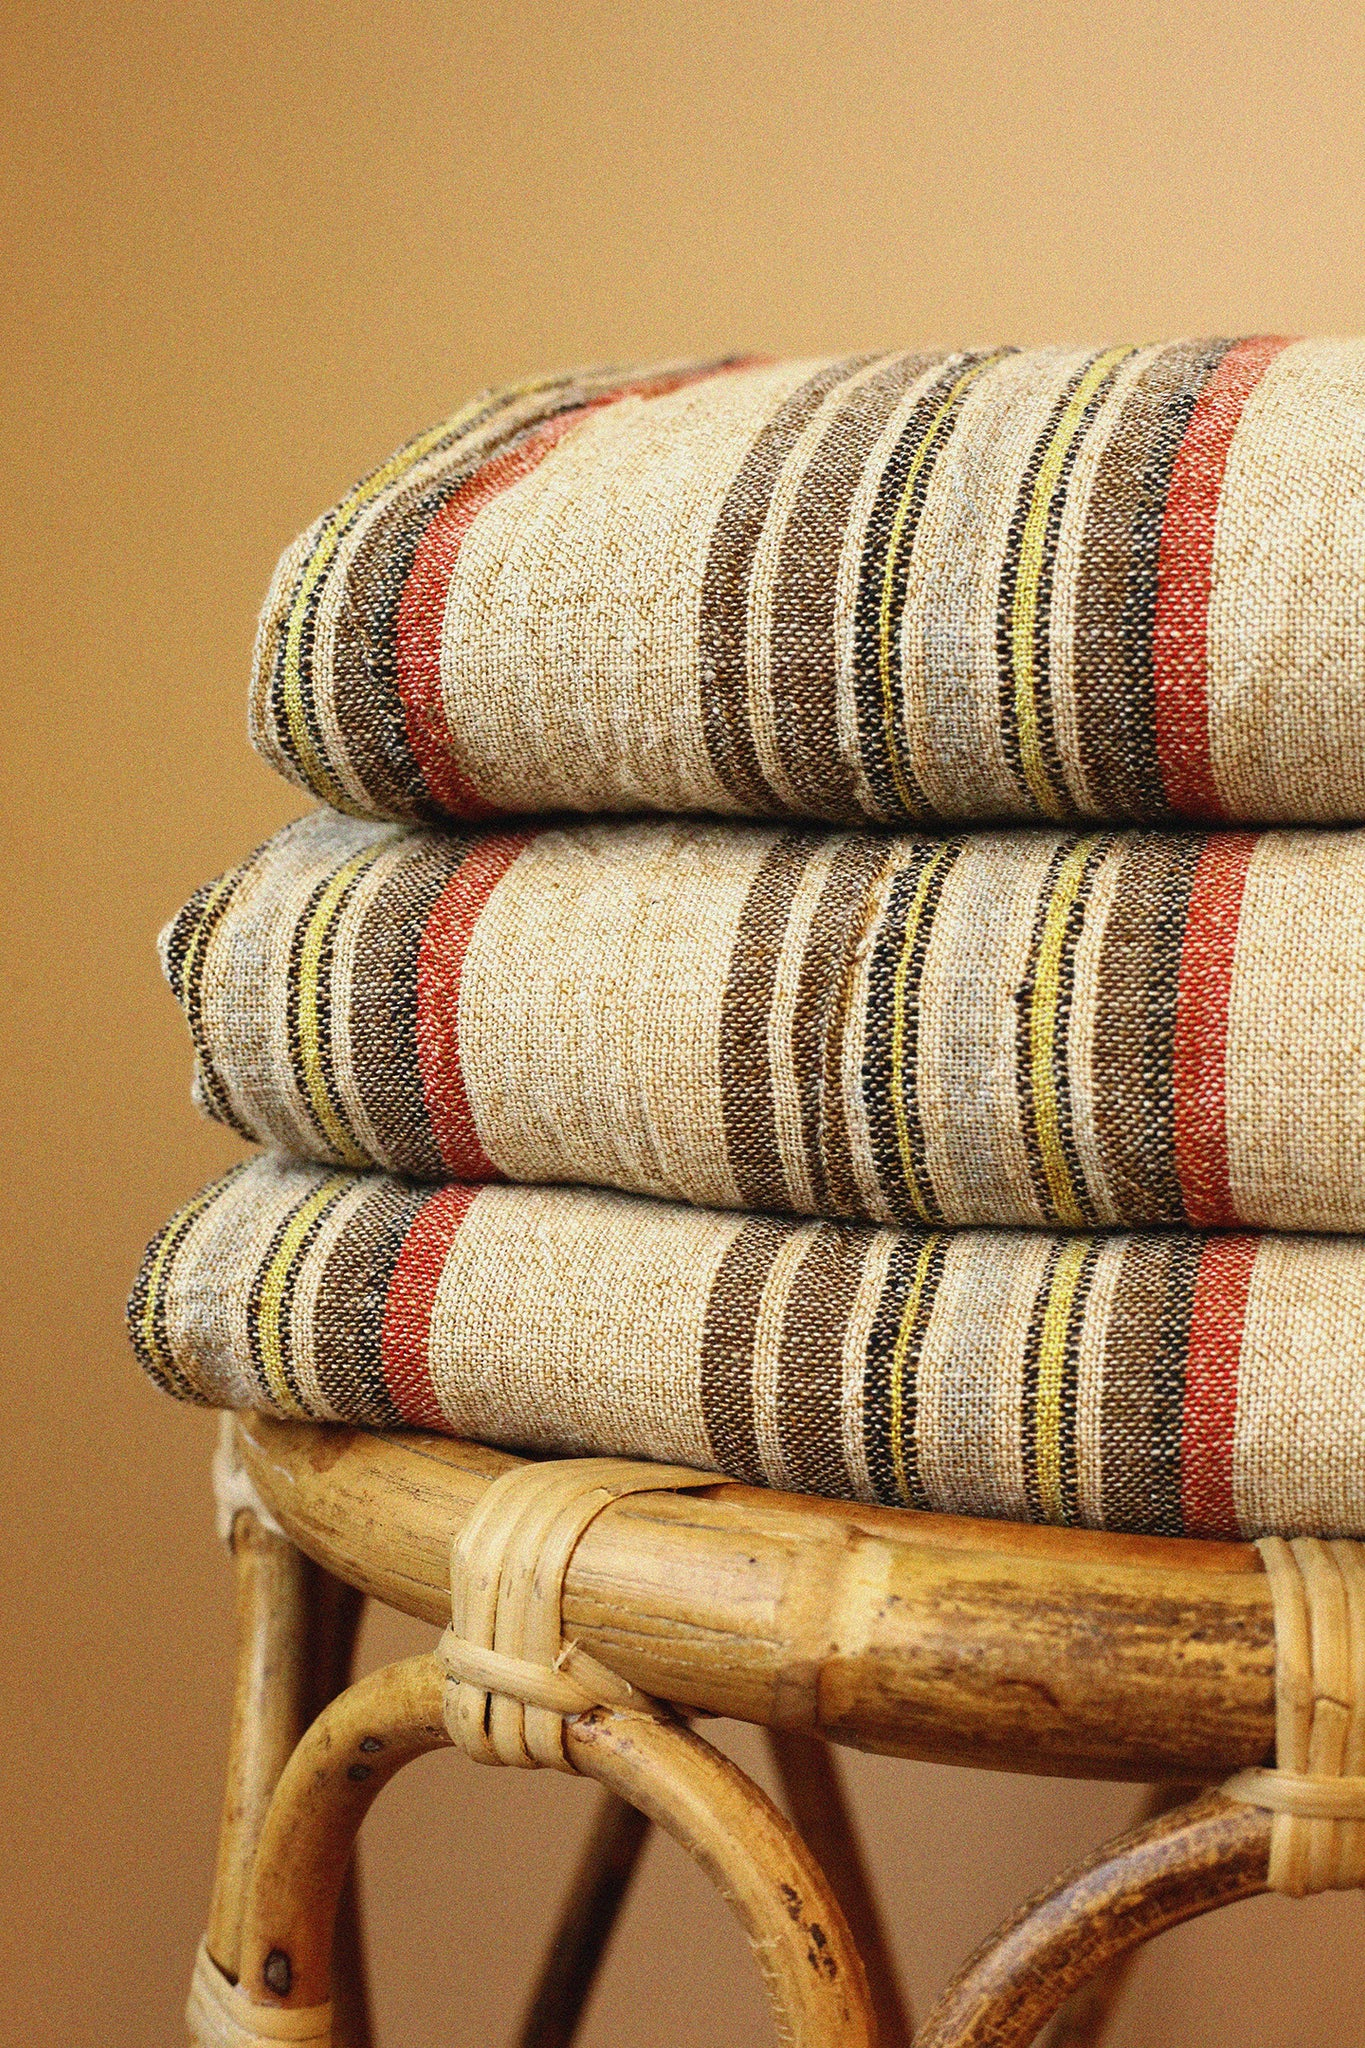 Alem Handwoven Linen Towel Collection